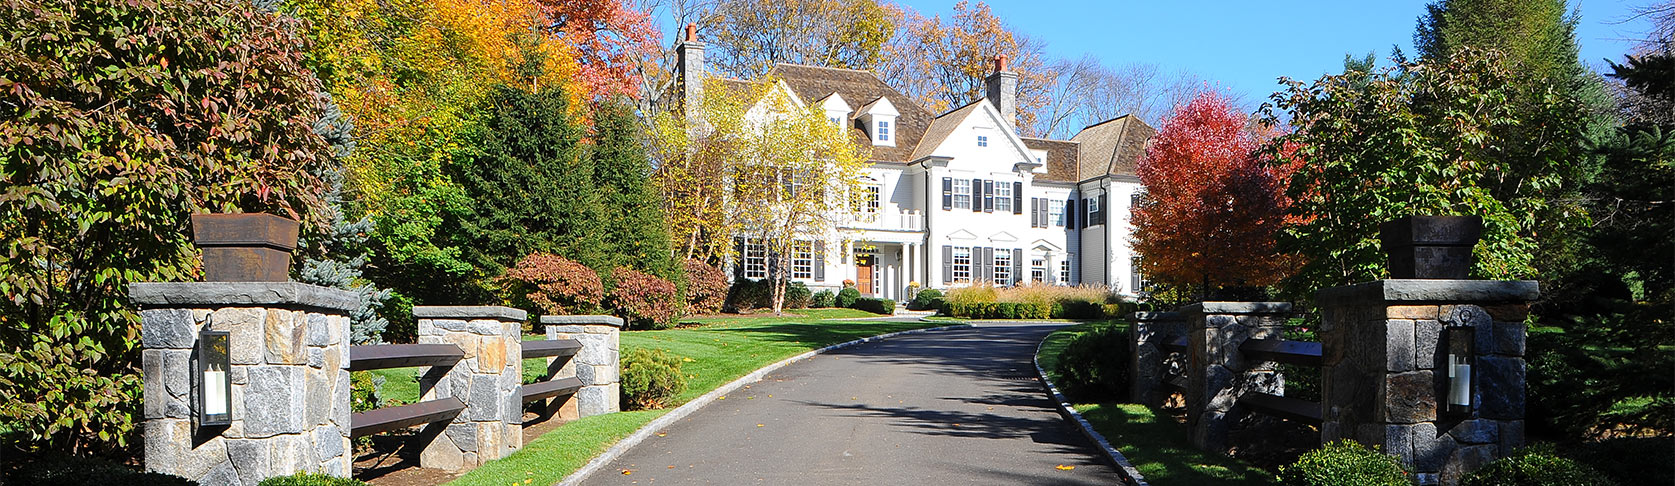 107 Dunning Road, New Canaan, CT